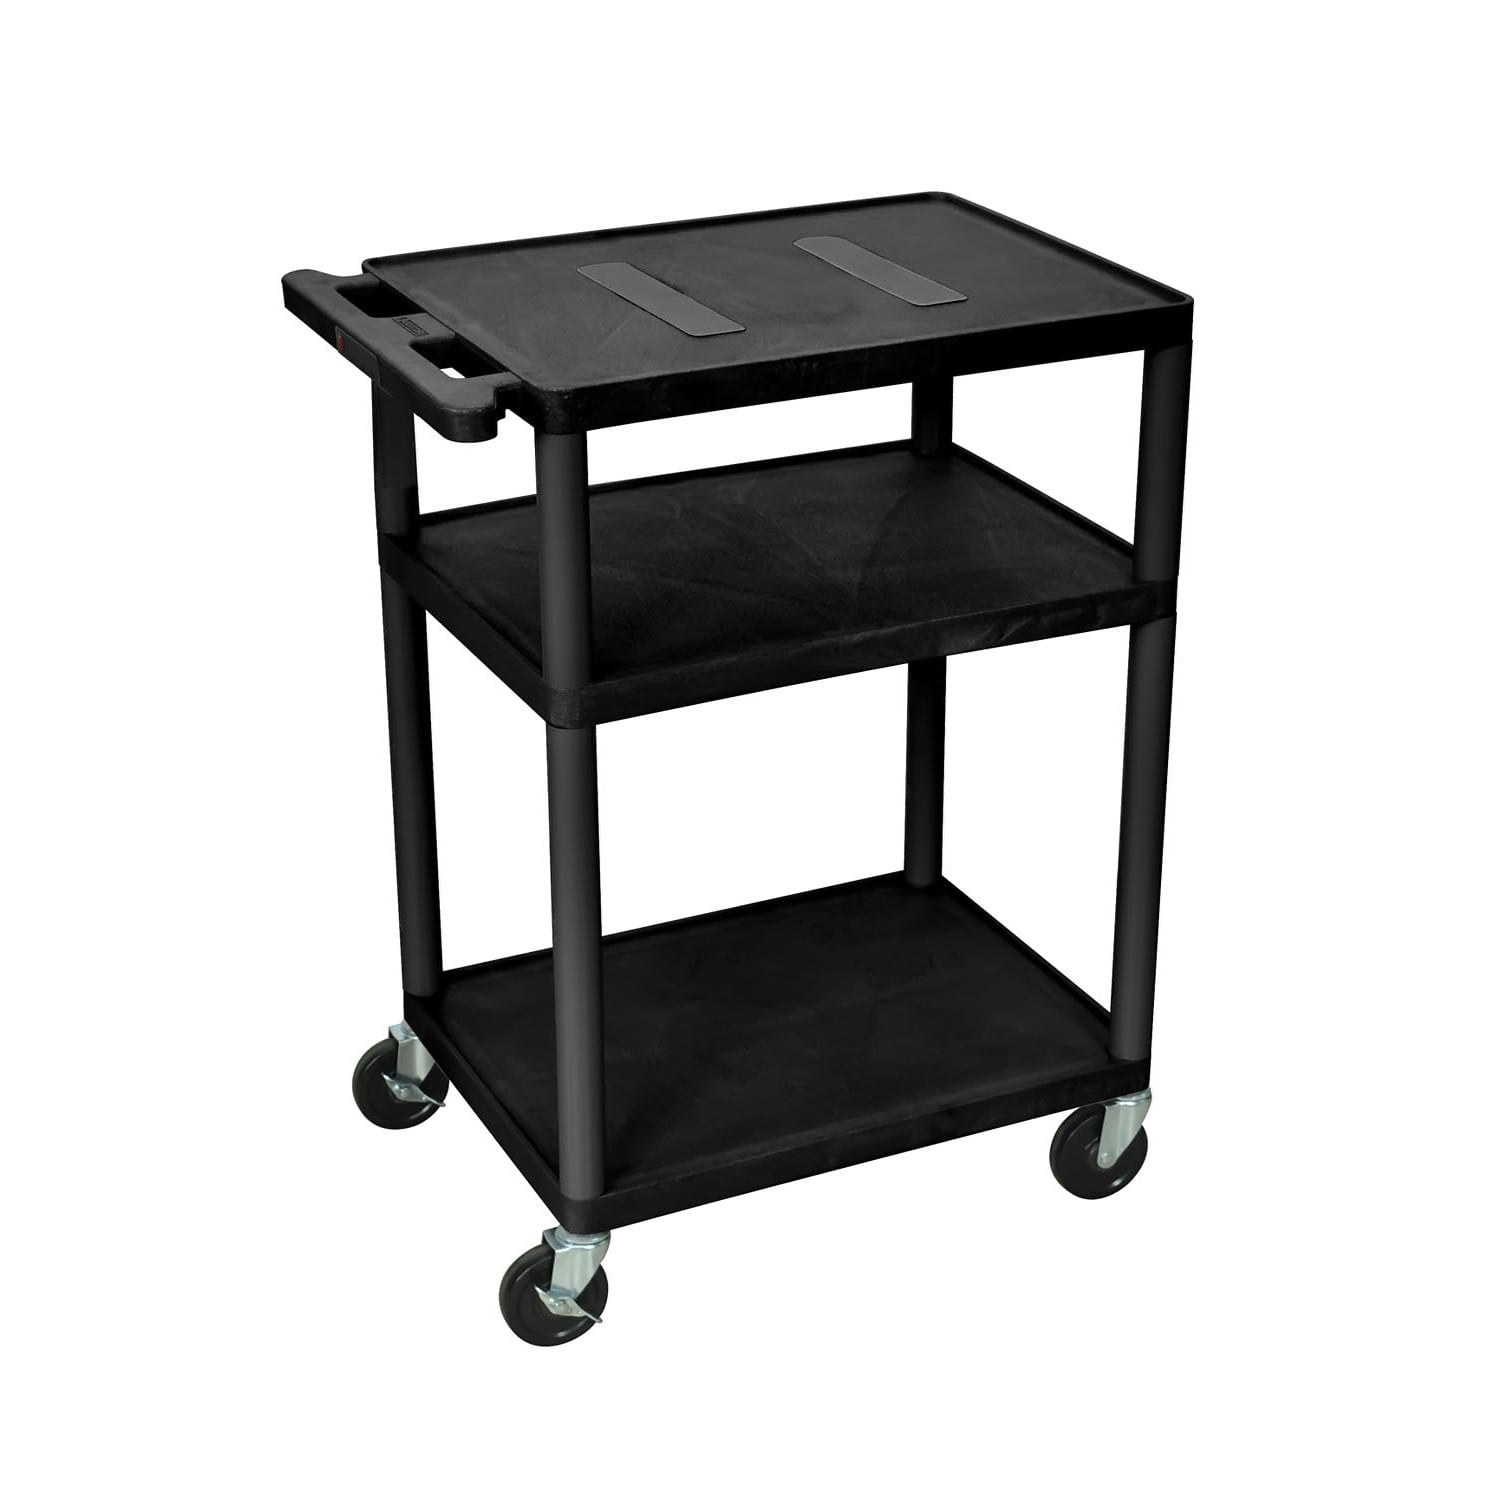 Offex  Endura Black 3-shelf Rolling A/V Utility Cart With Casters